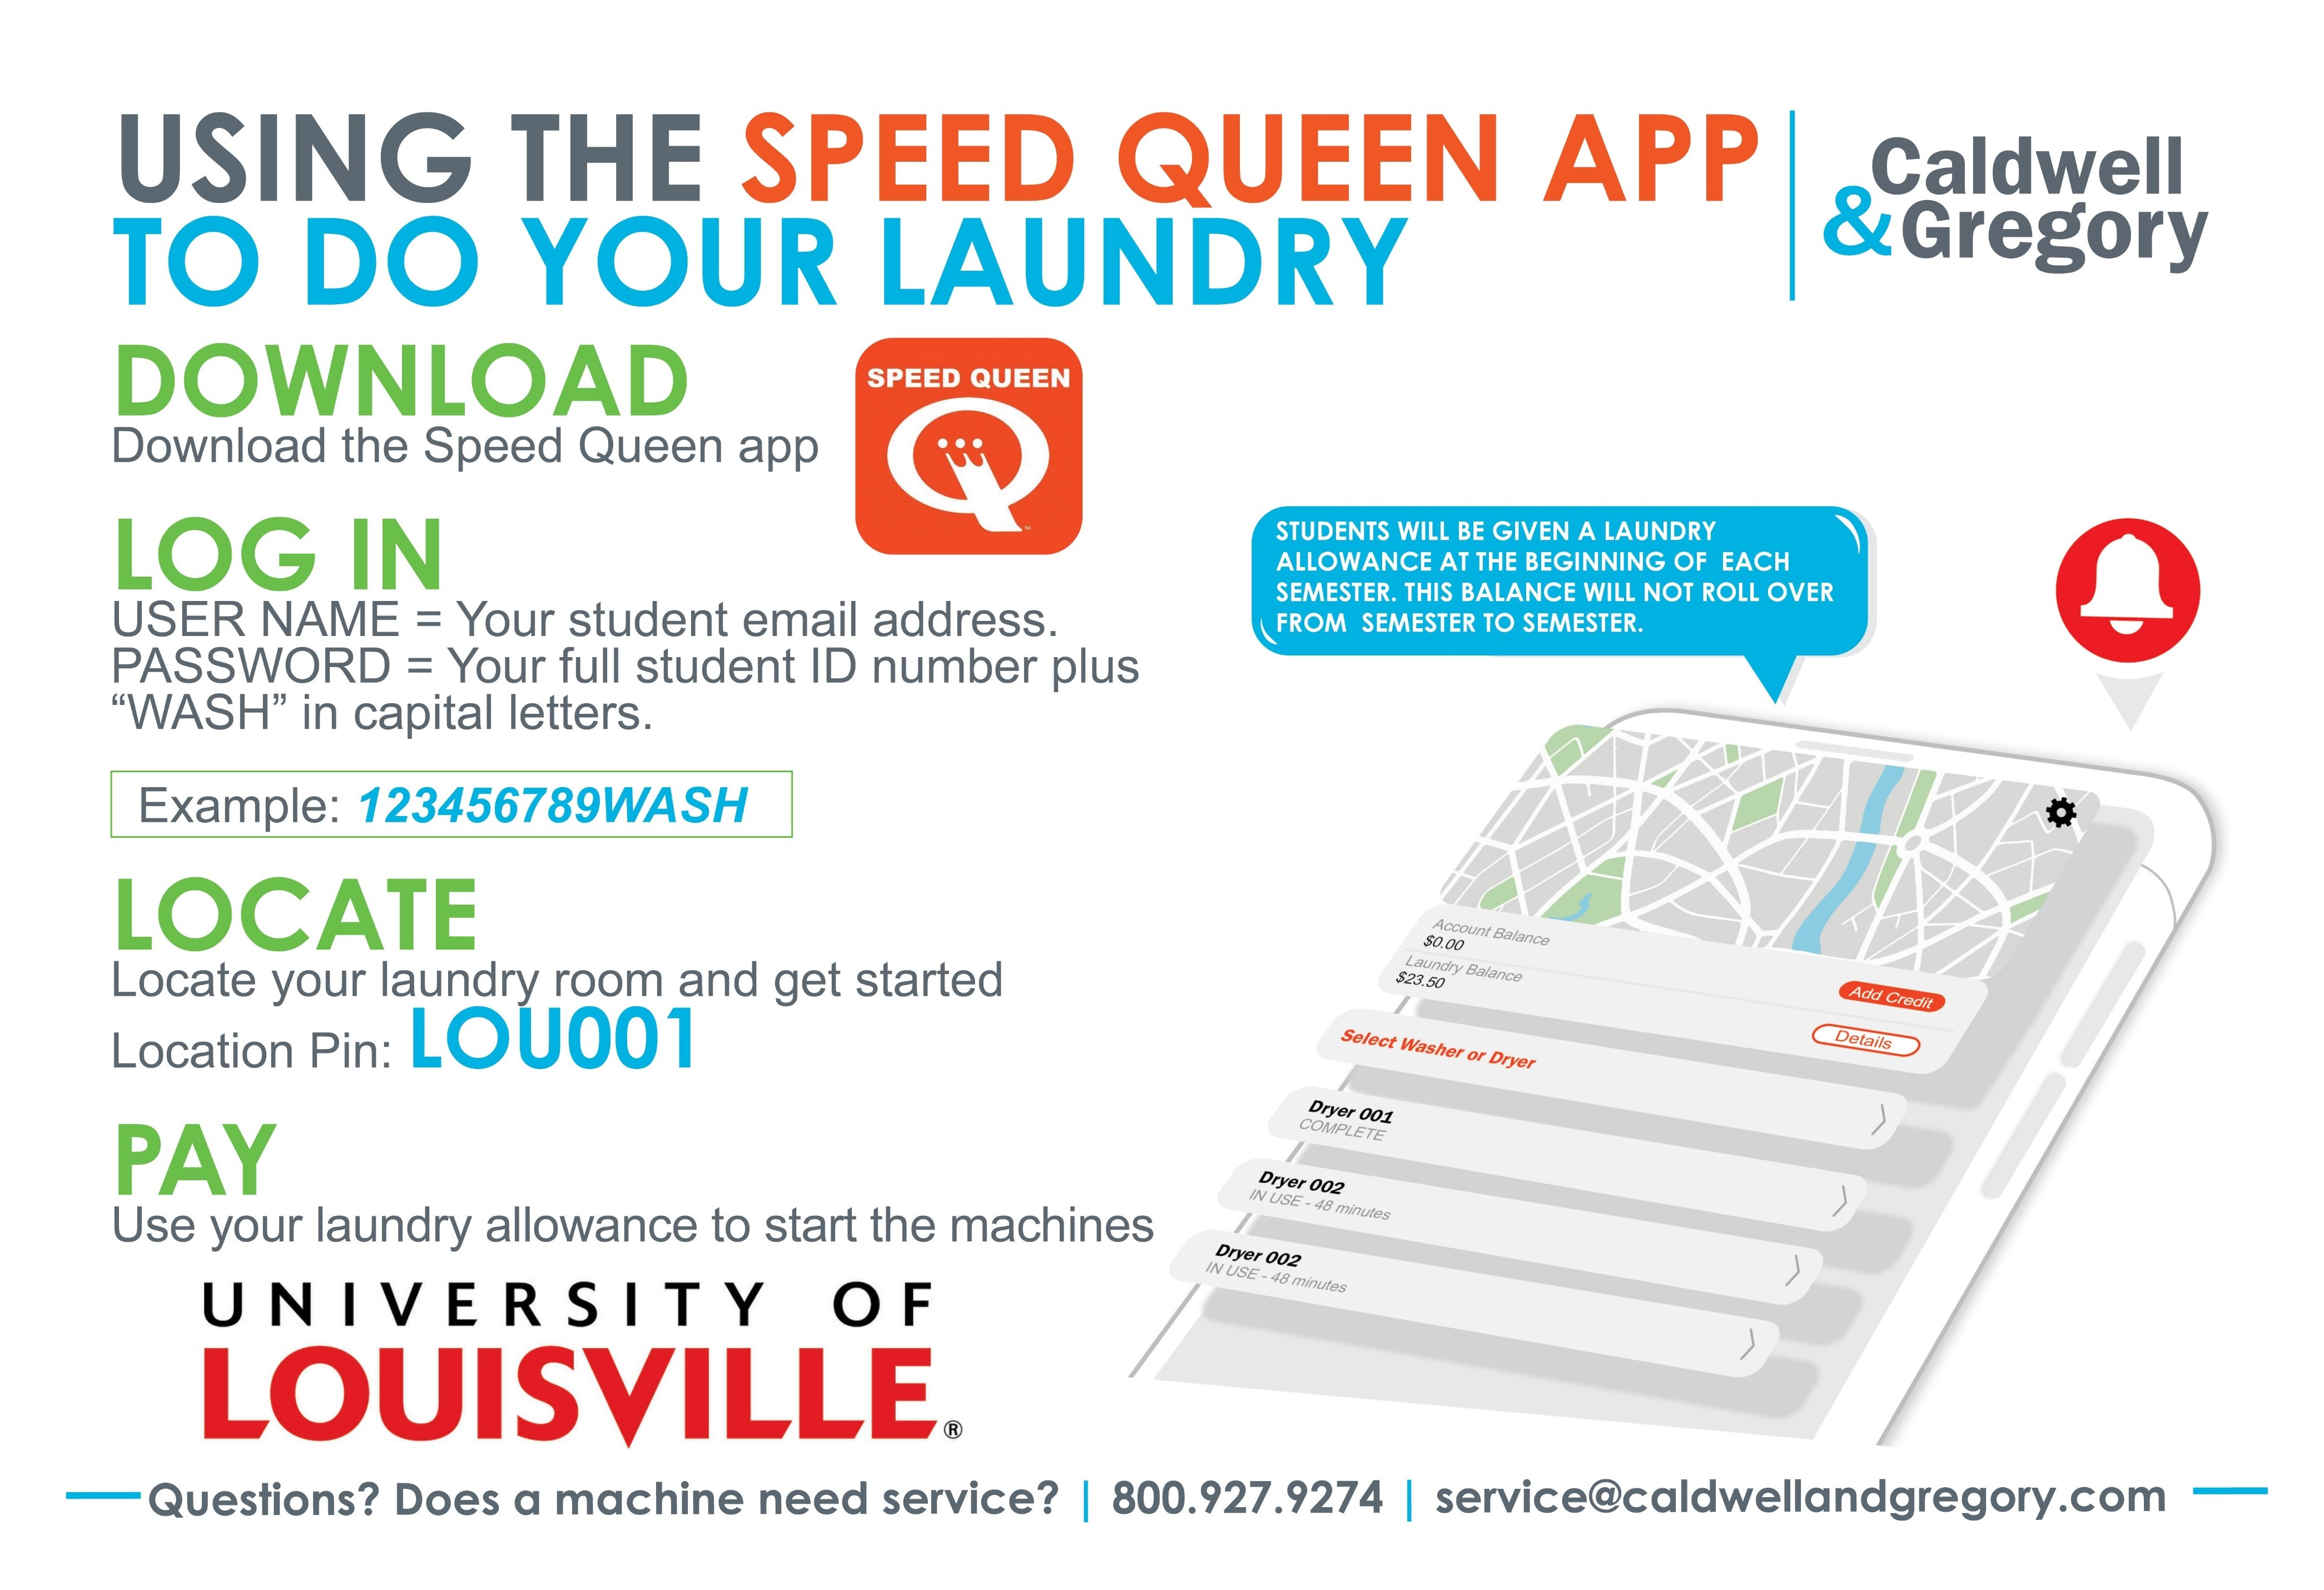 download the Speed Queen app. Log in using your ulink user name. Your password will be your full student ID number followed by WASH. Select your location as LOU001. Pay